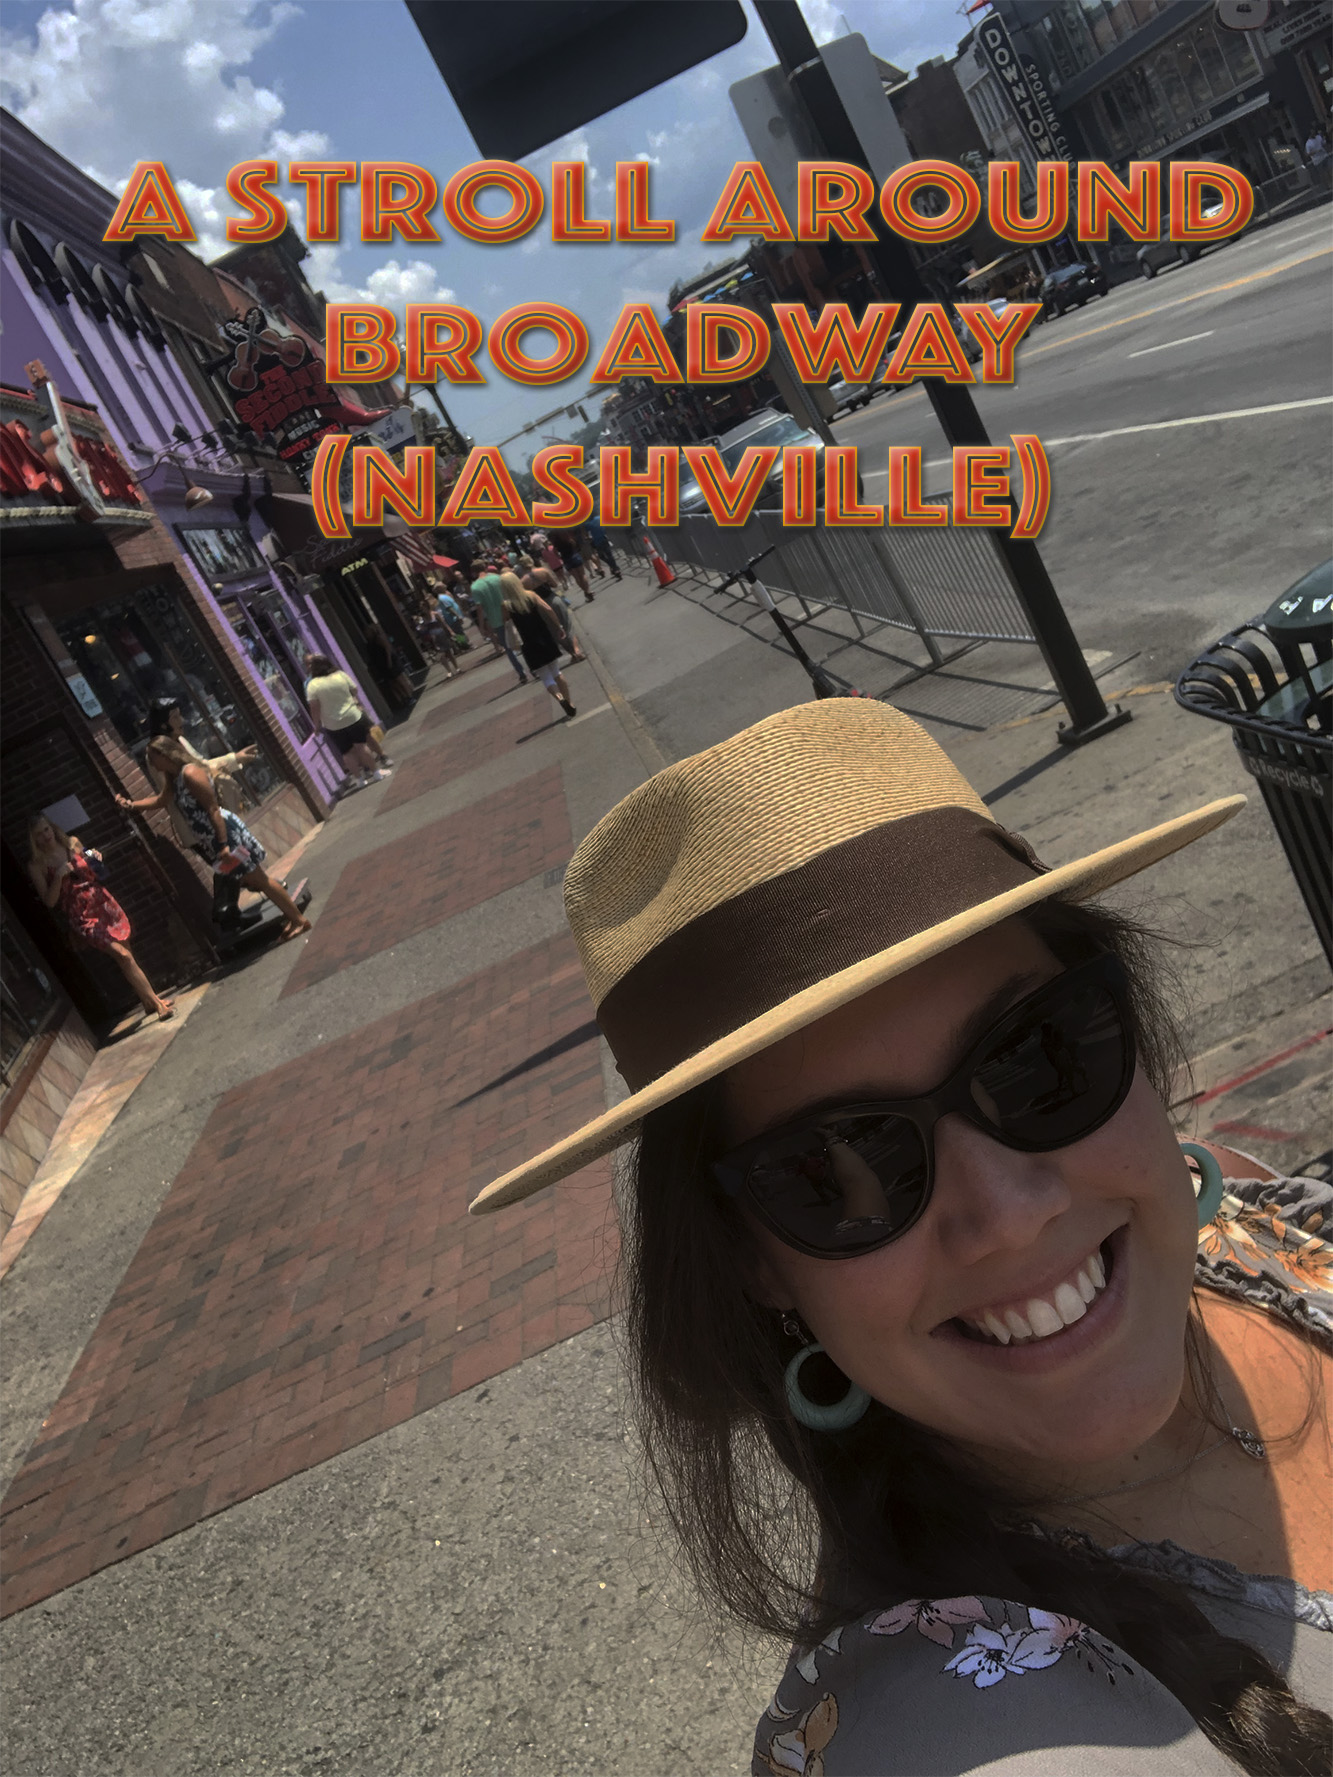 A stroll around Broadway (Nashville)